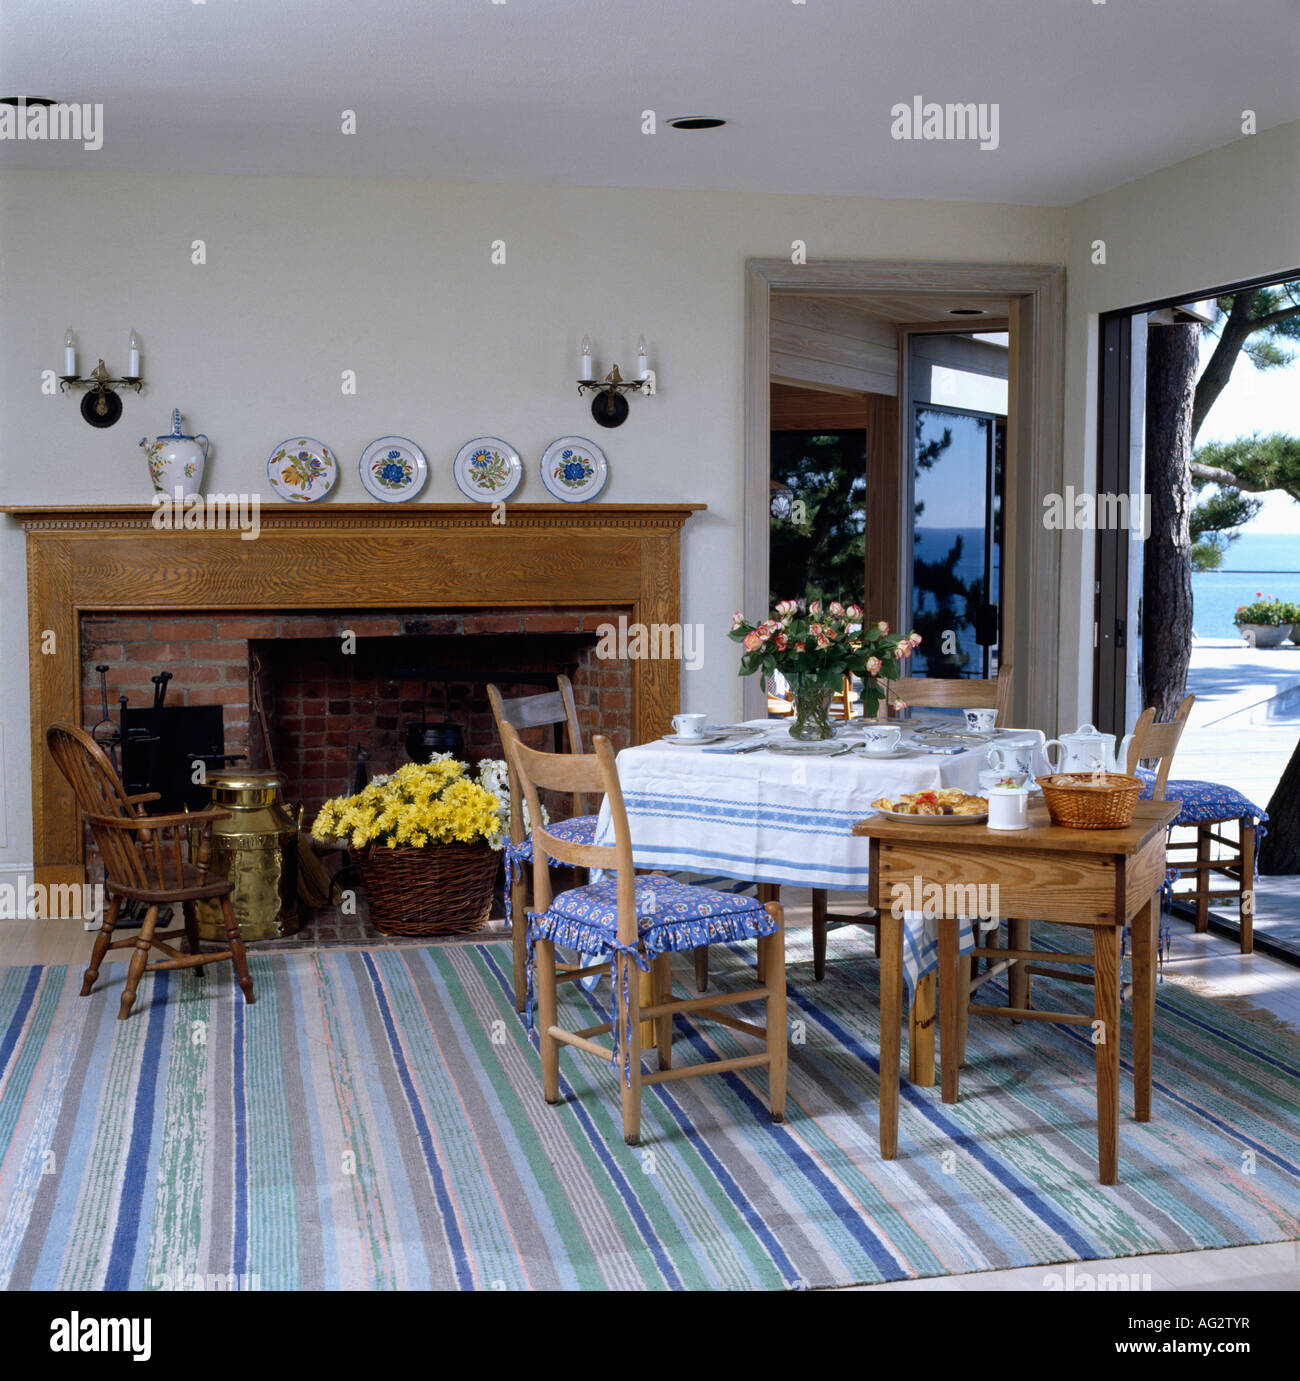 Seaside Dining Room With Wooden Fireplace And Pastel Blue Striped Carpet  And View Of The Ocean Through Glass Doors